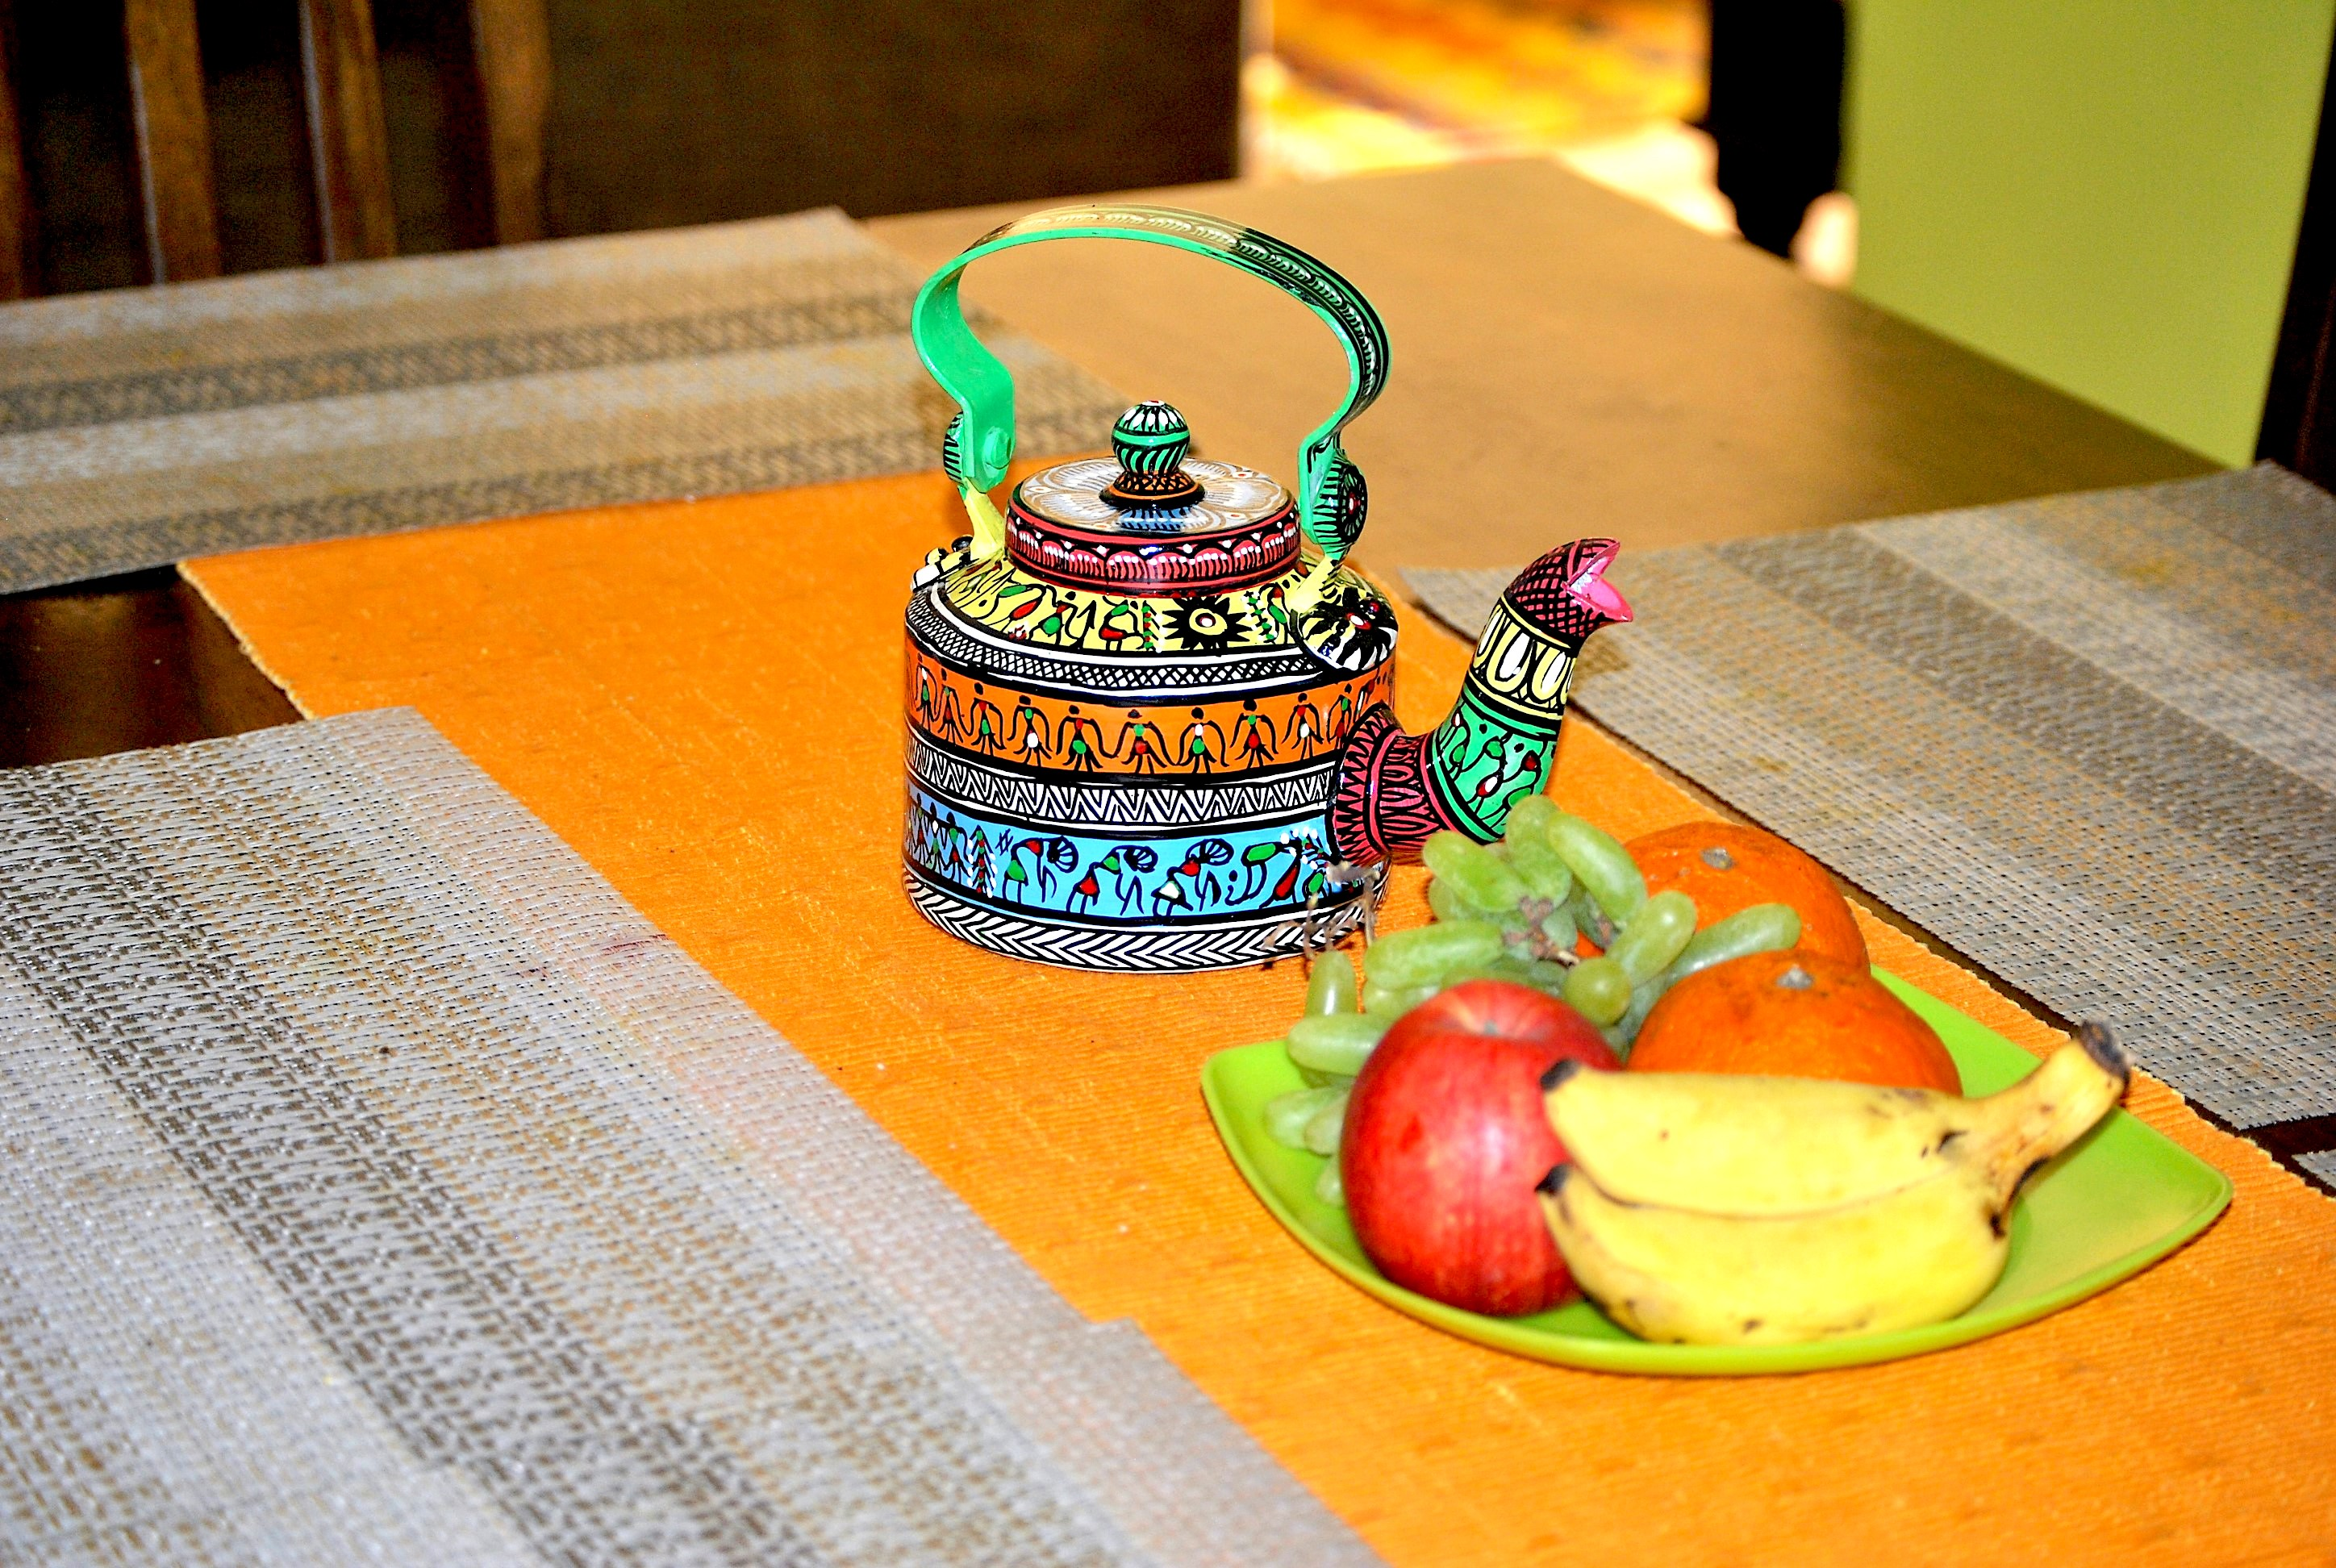 Top-decor-ideas-for-your-home-with-hand-painted-kettles7 Top decor ideas for your home with hand-painted kettles